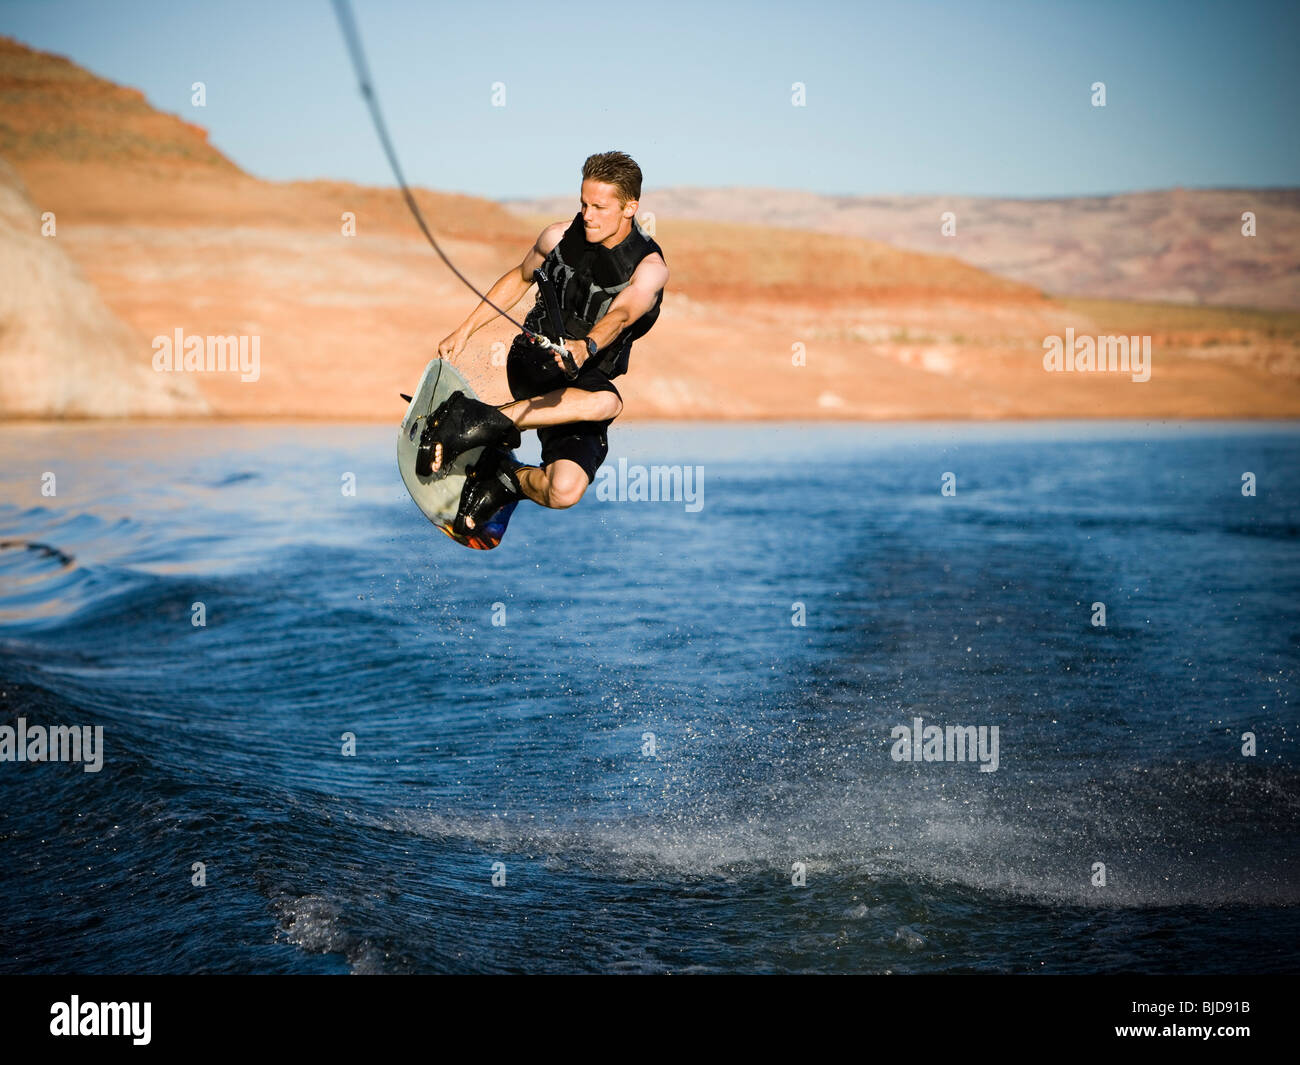 Man on a wakeboard. - Stock Image